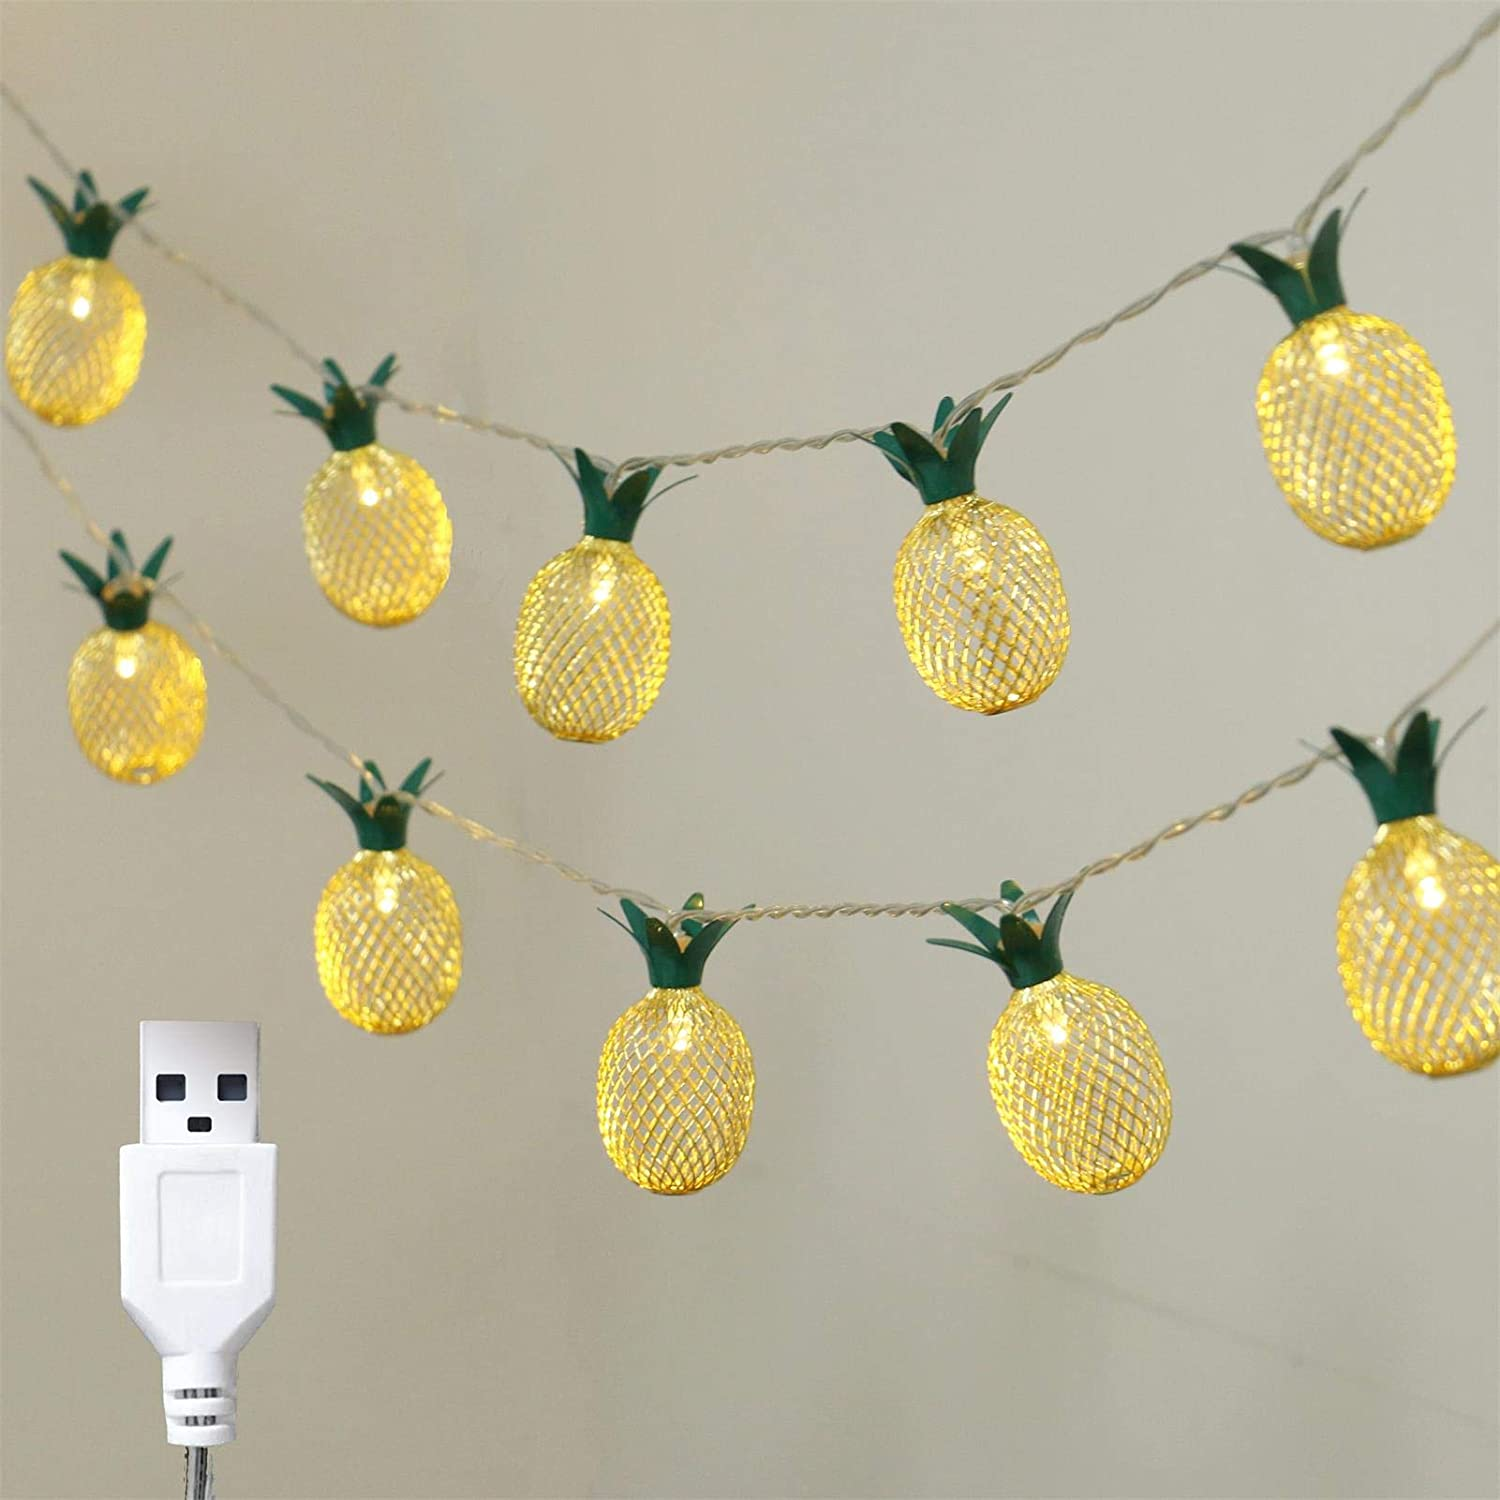 Details about  /2M Lovely Yellow Pineapple String Light Battery//EU Plug Powered LED Light